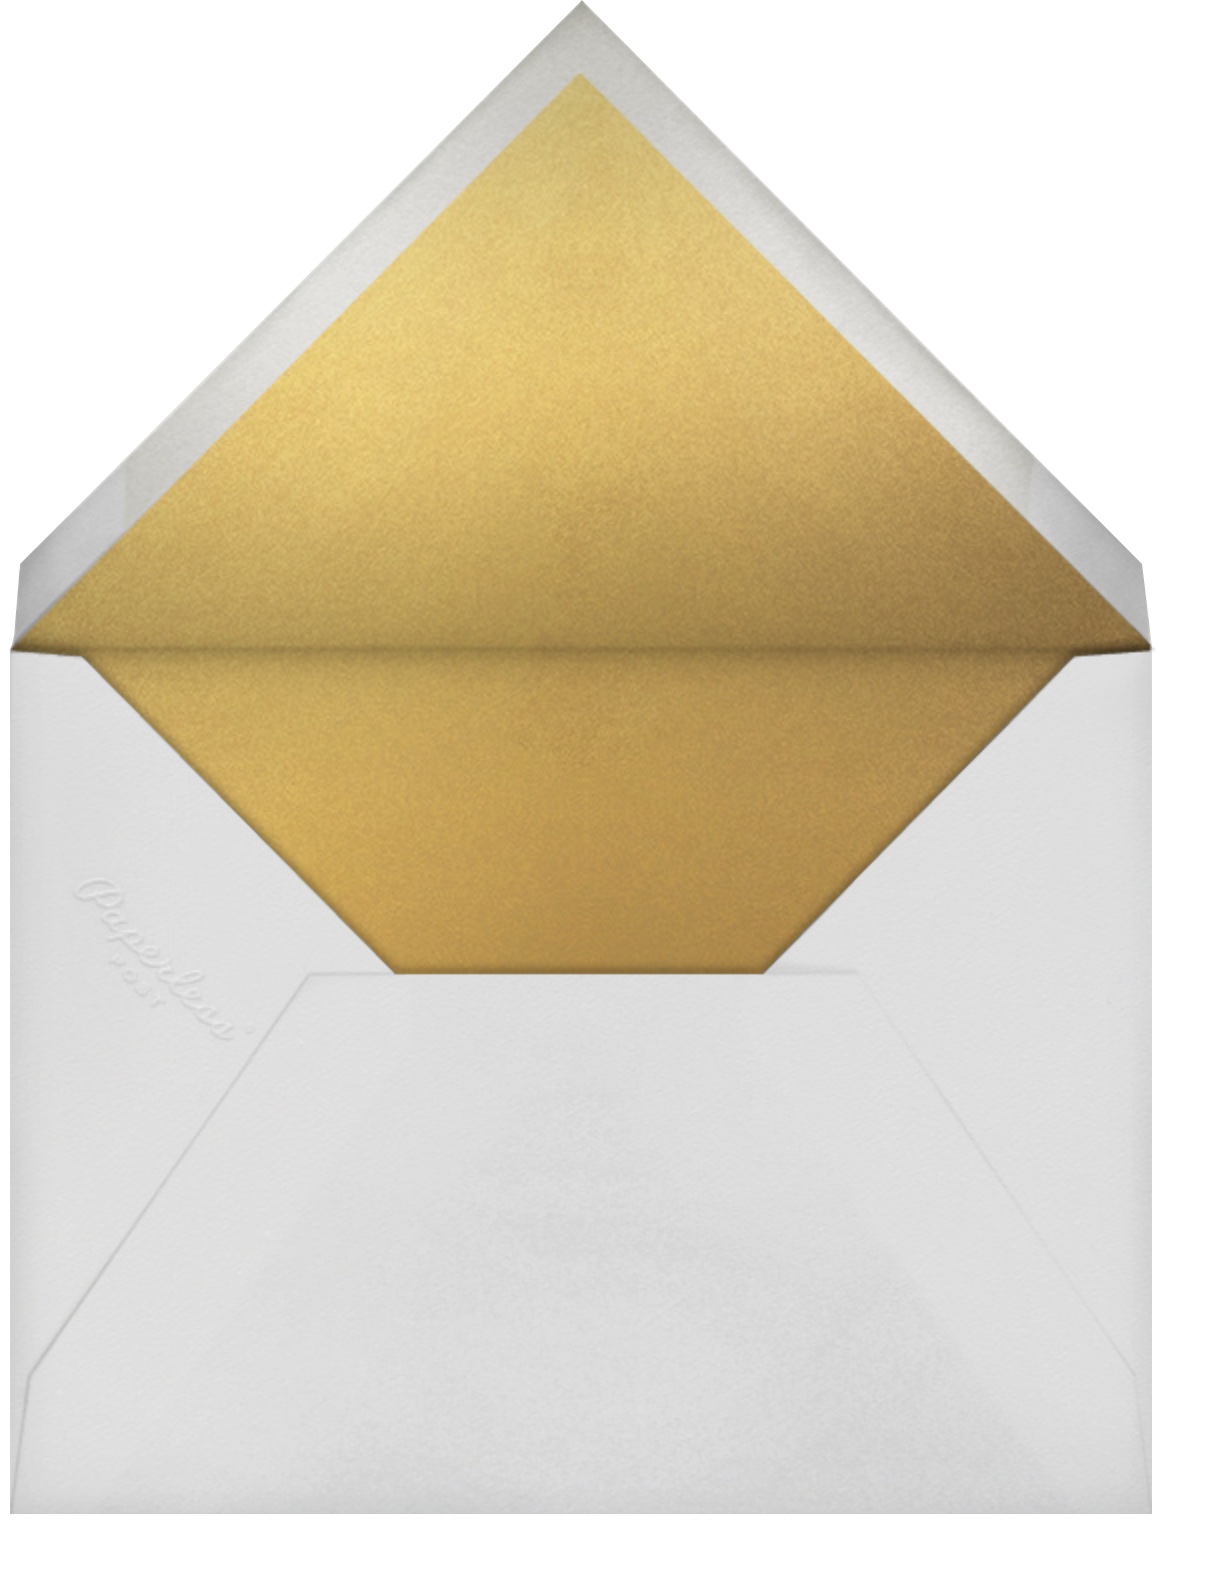 Vermeil (Save the Date) - Vera Wang - Event save the dates - envelope back